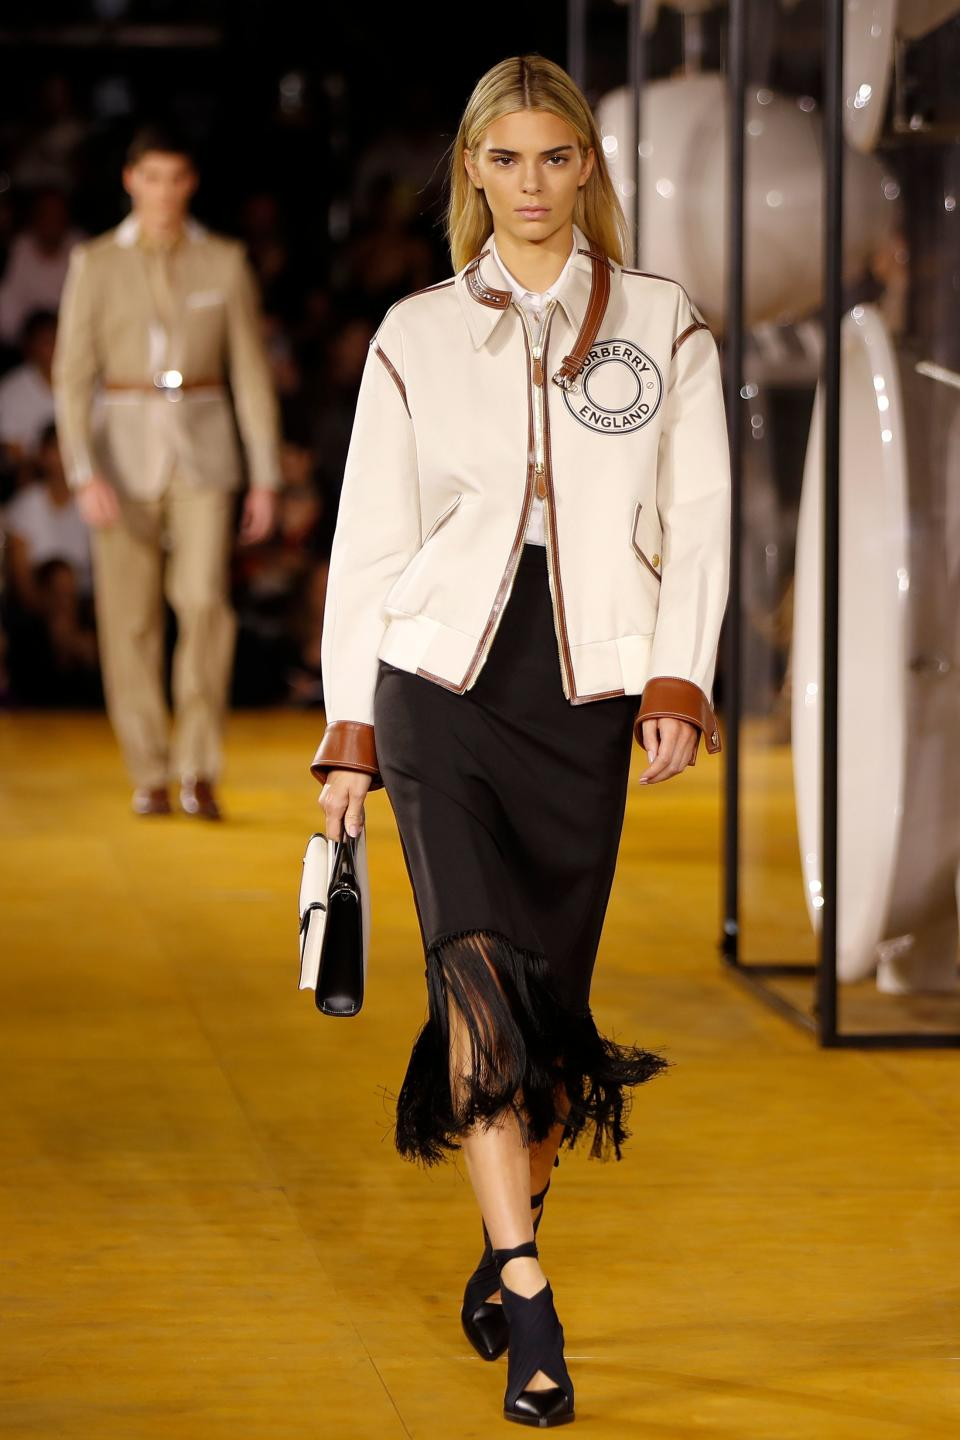 Kendall Jenner made a return to the runway with new blonde locks at Burberry's spring/summer 2020 show. [Photo: Getty Images]